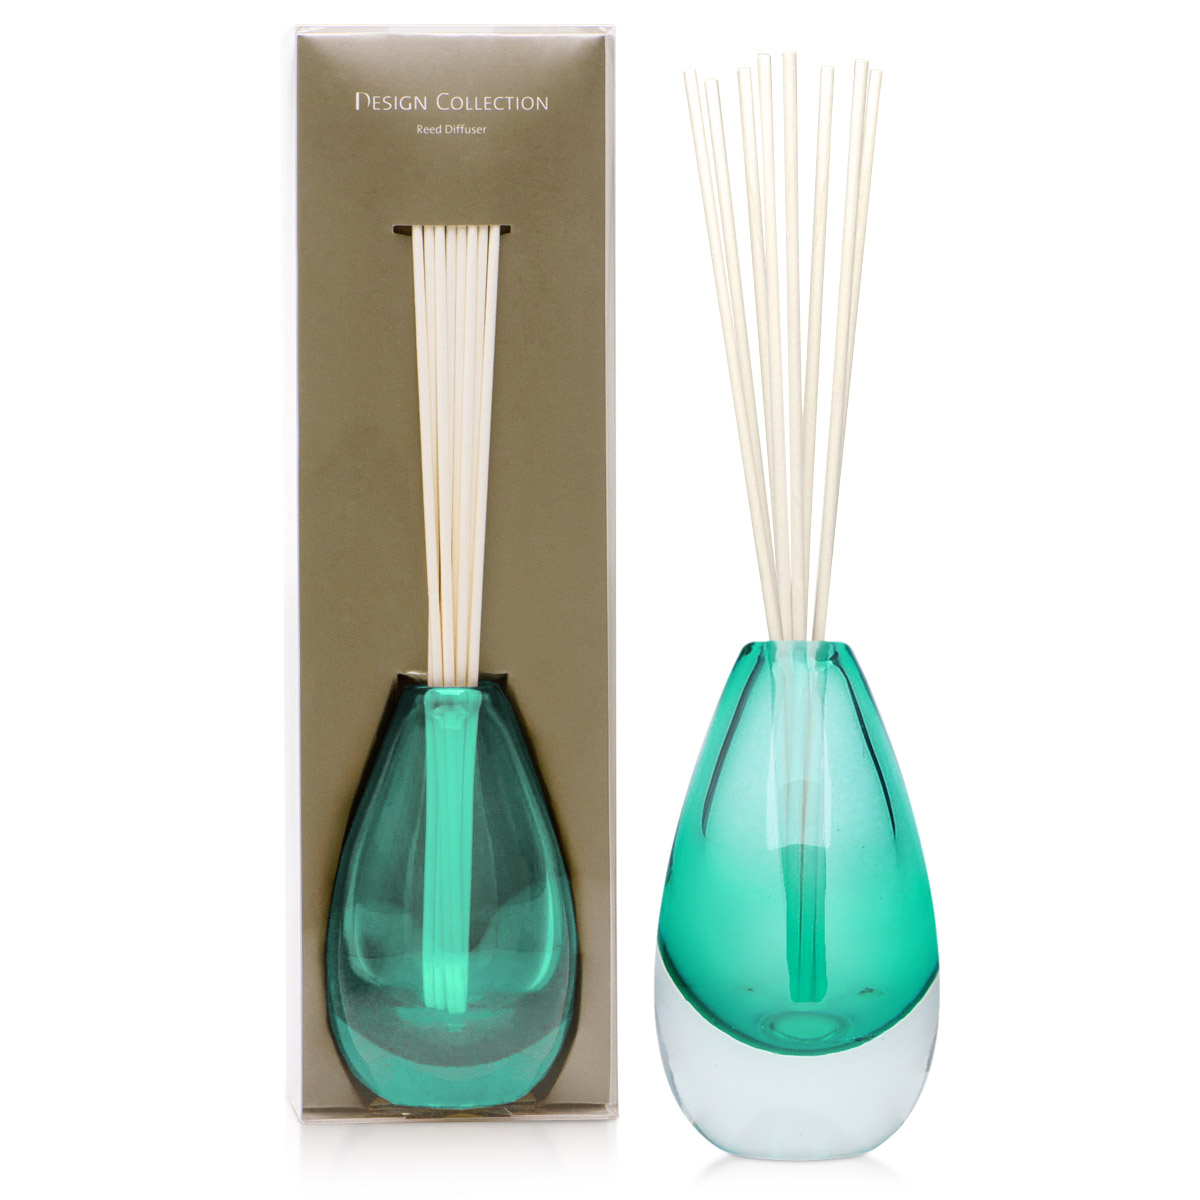 Aroma Diffuser Bottle ~ Design collection green reed diffuser bottle